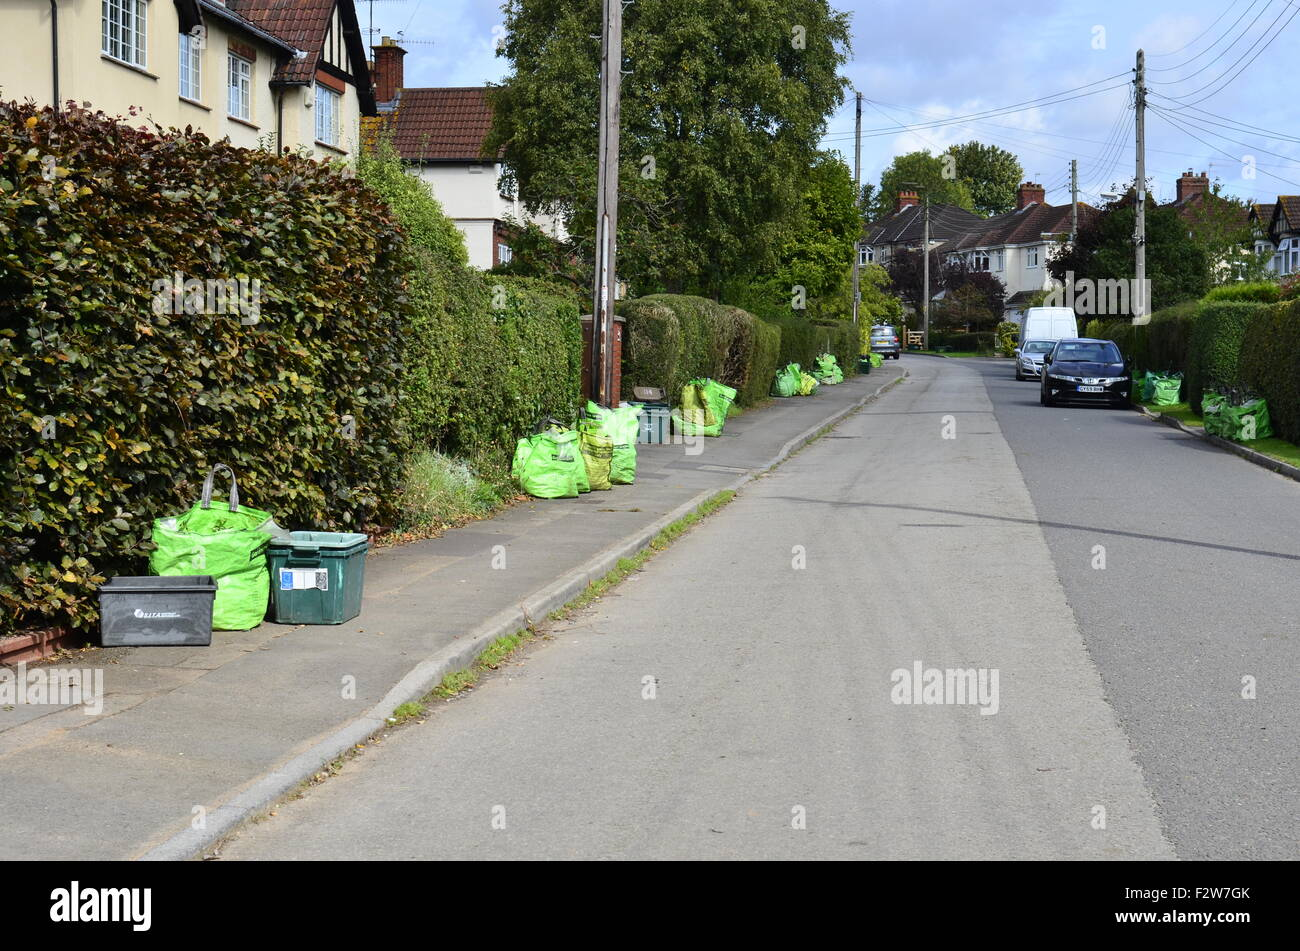 Green Rubbish Bags put out for collection in the Long Ashton area of Bristol. Robert Timoney. - Stock Image